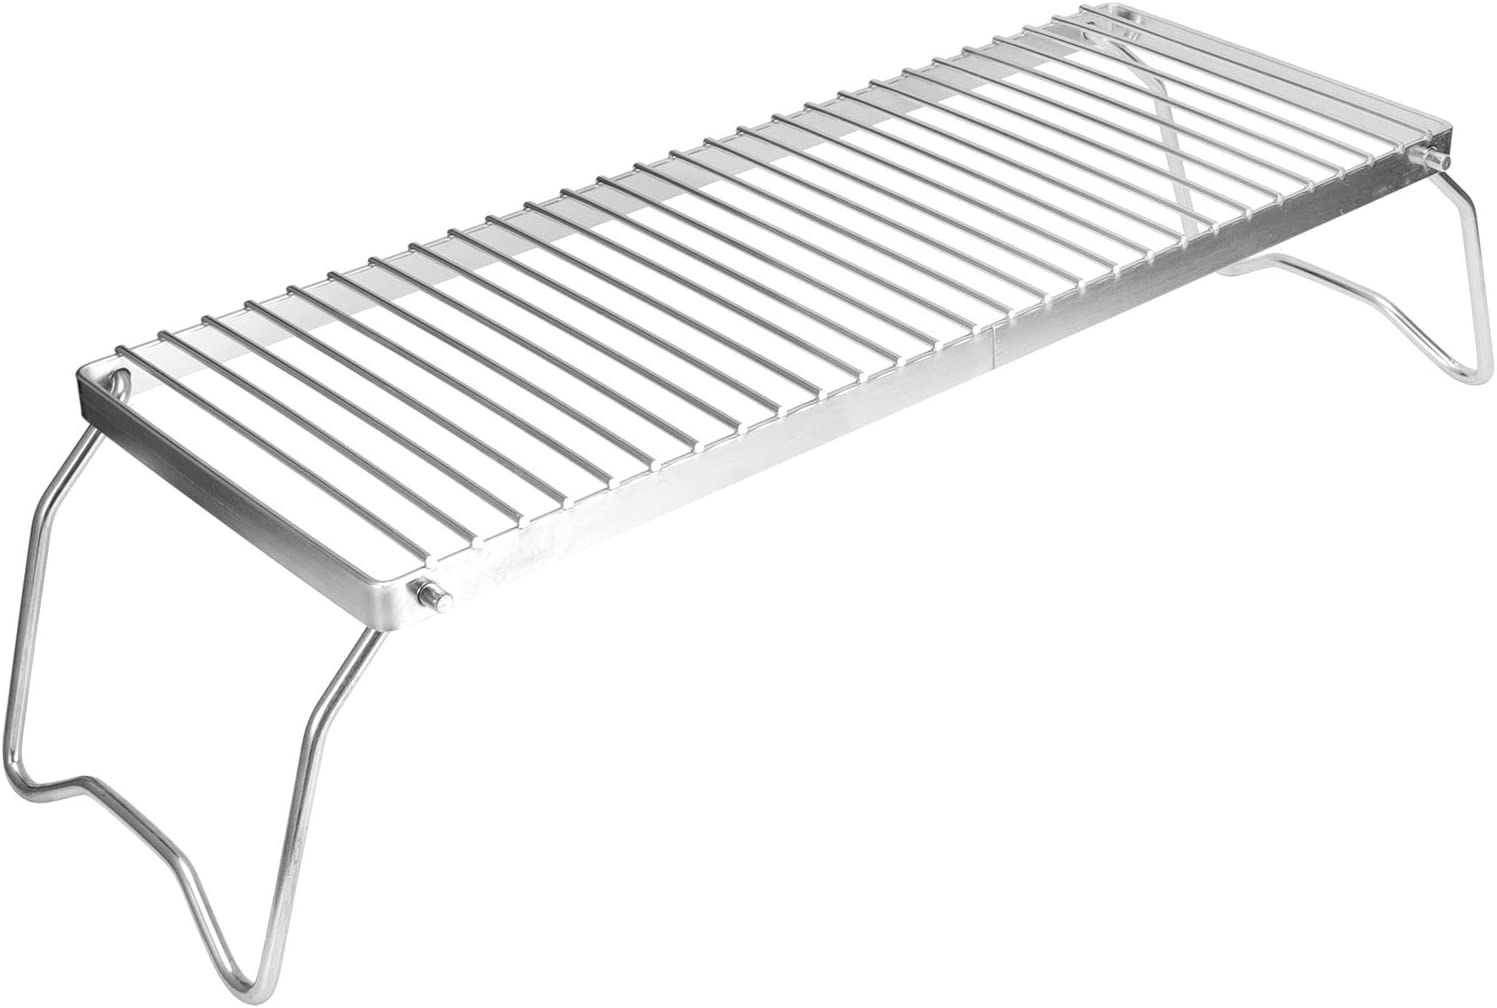 Max 52% OFF Wosune Portable Camping Grill Campfire Stainless Folding Recommended